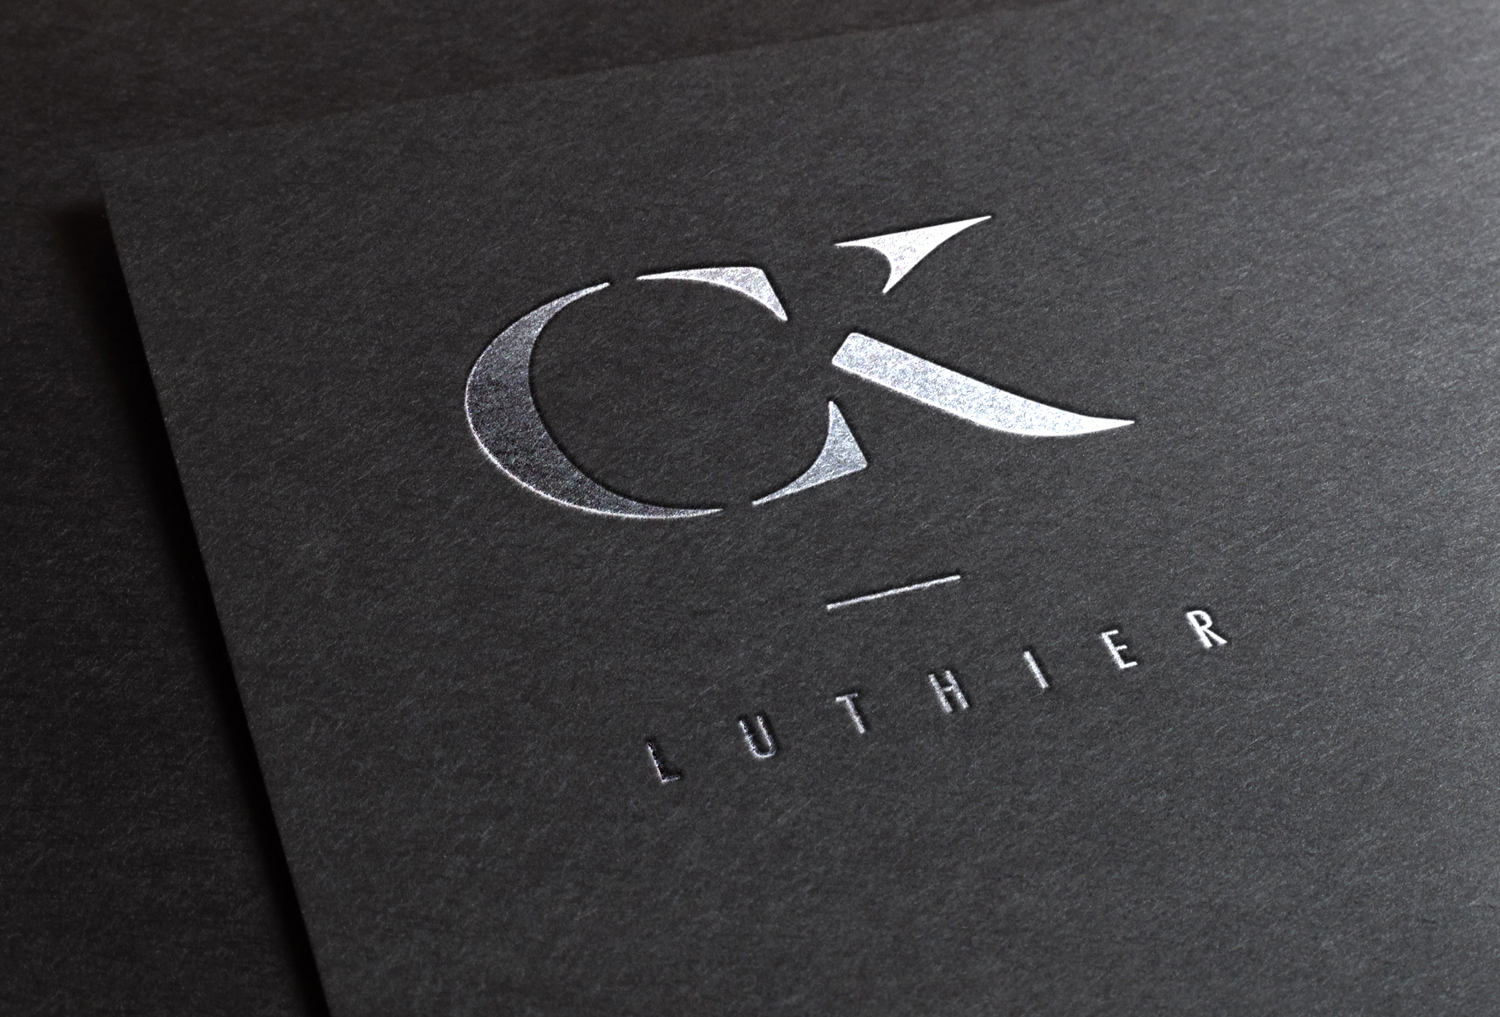 CK_Luthier-FrontPage